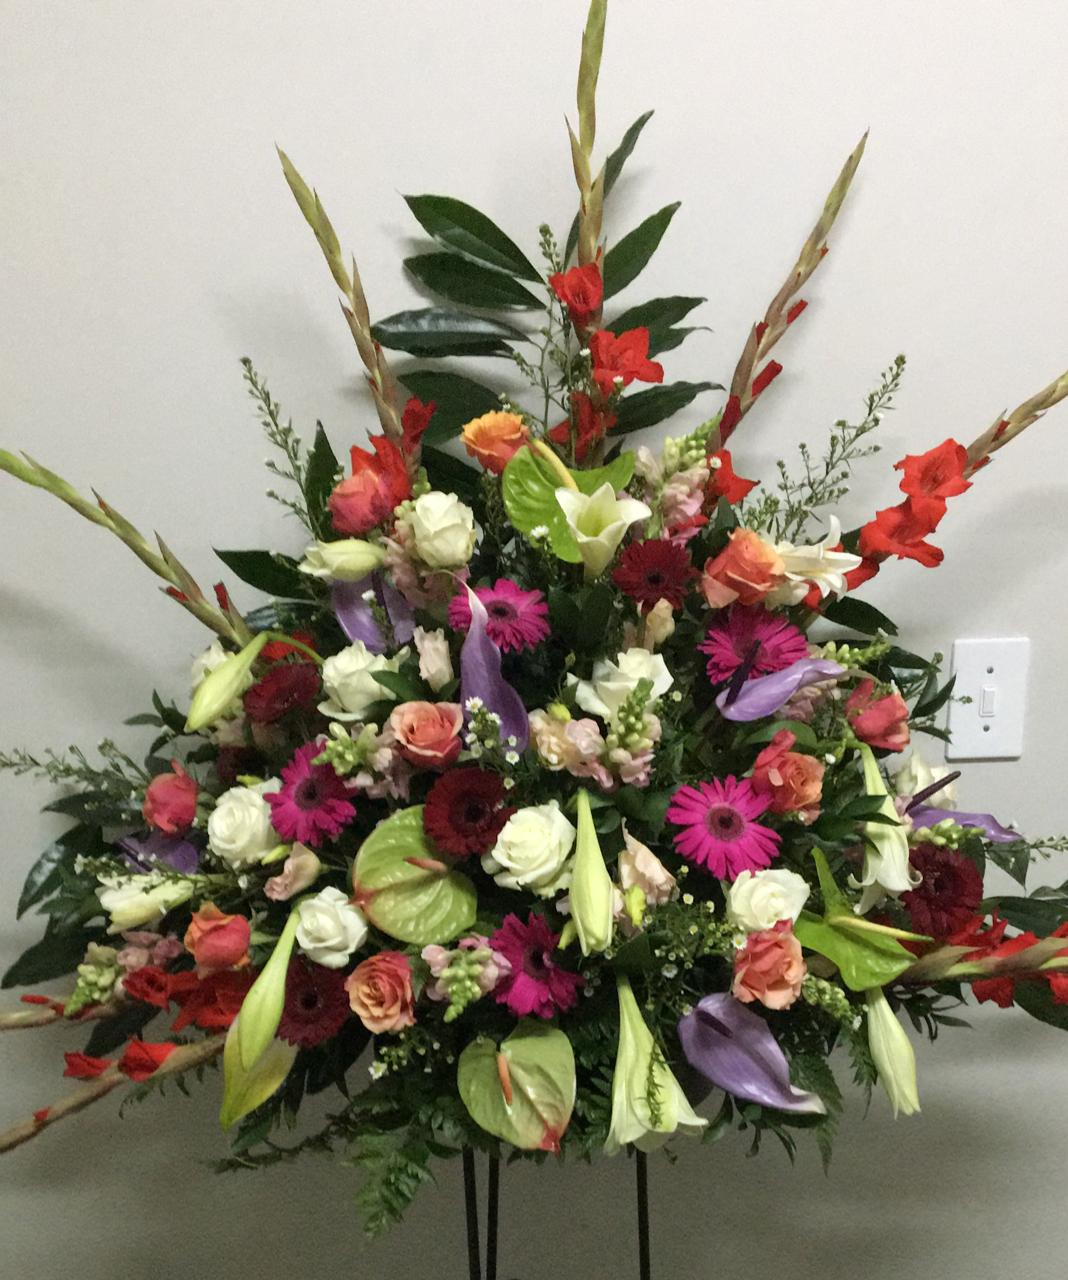 Exotic arrangement with assorted flowers and colors